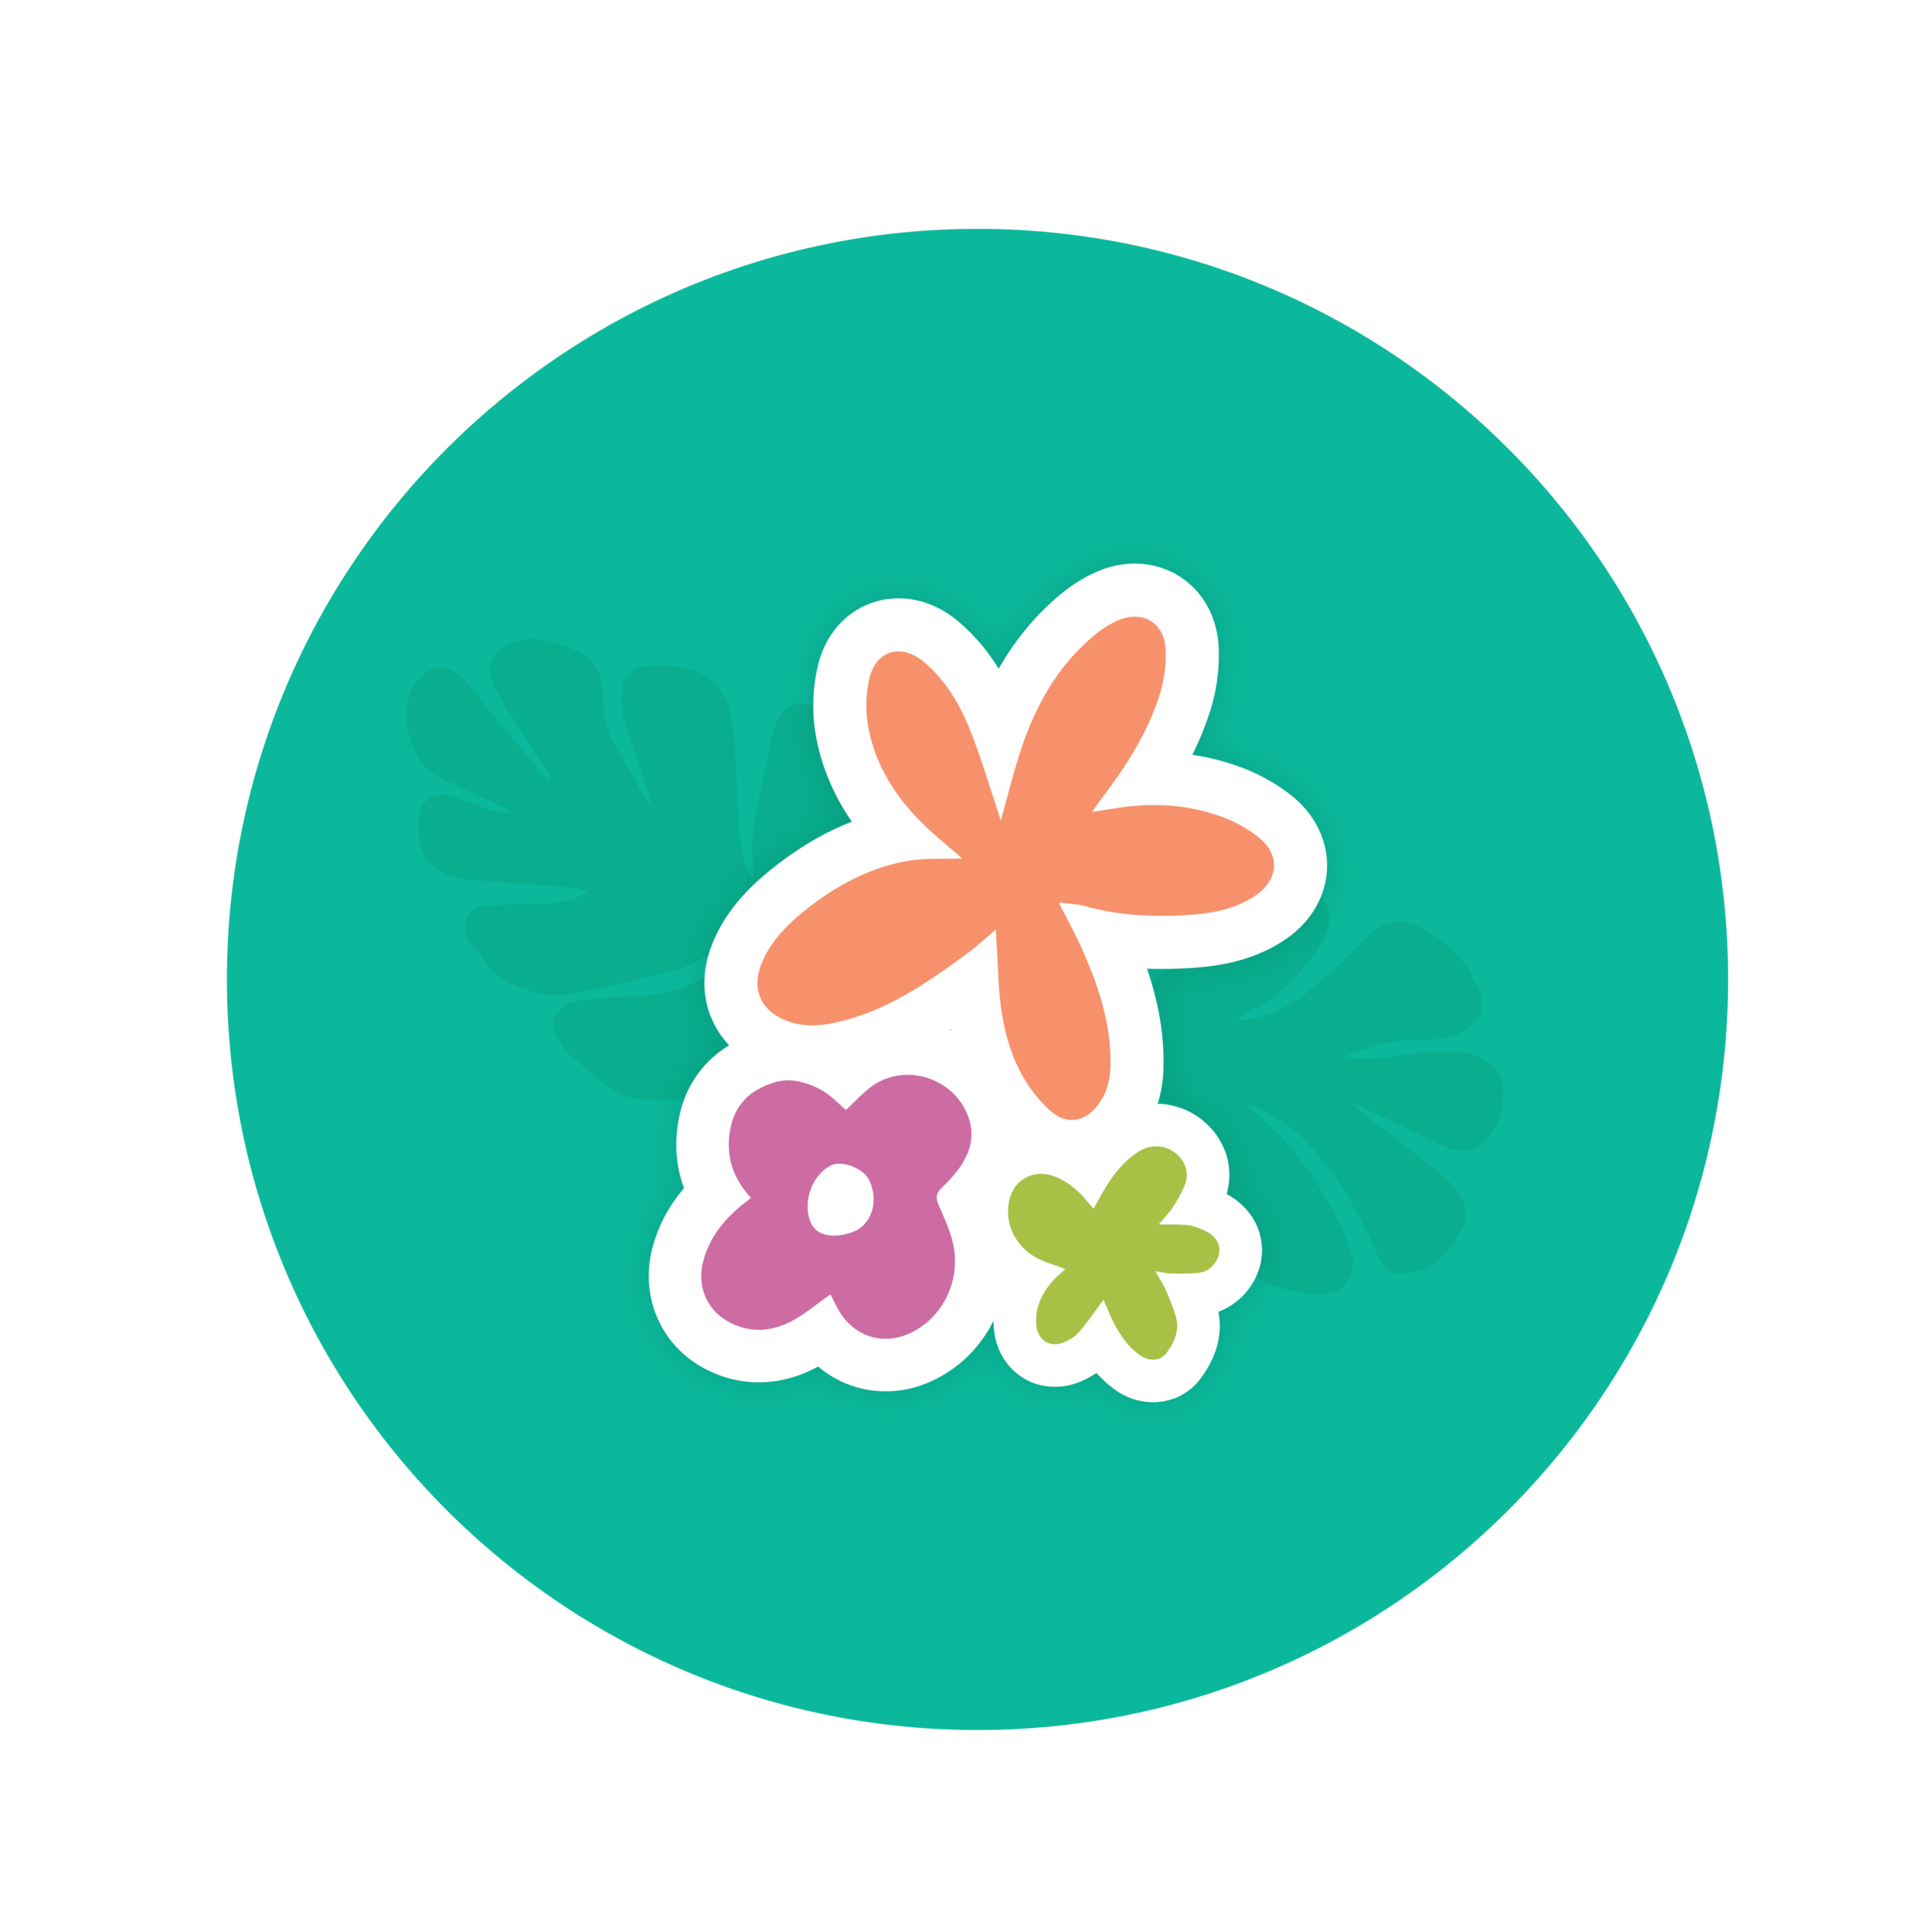 illustration-services-icon.png